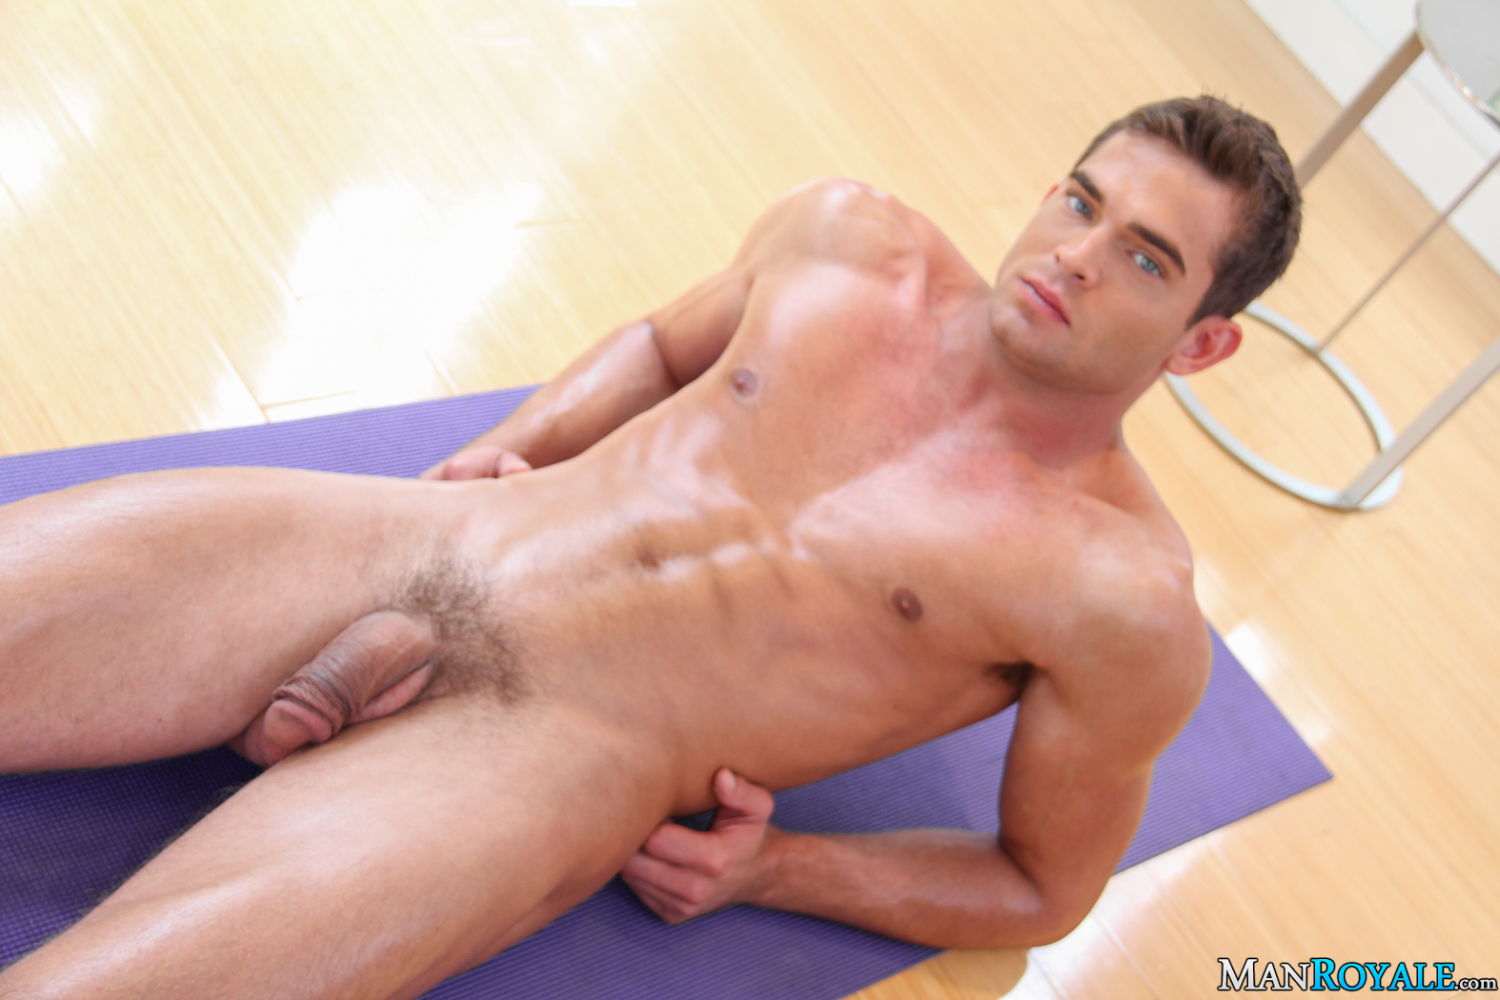 image Hd gay sex xxx photo hardening your image